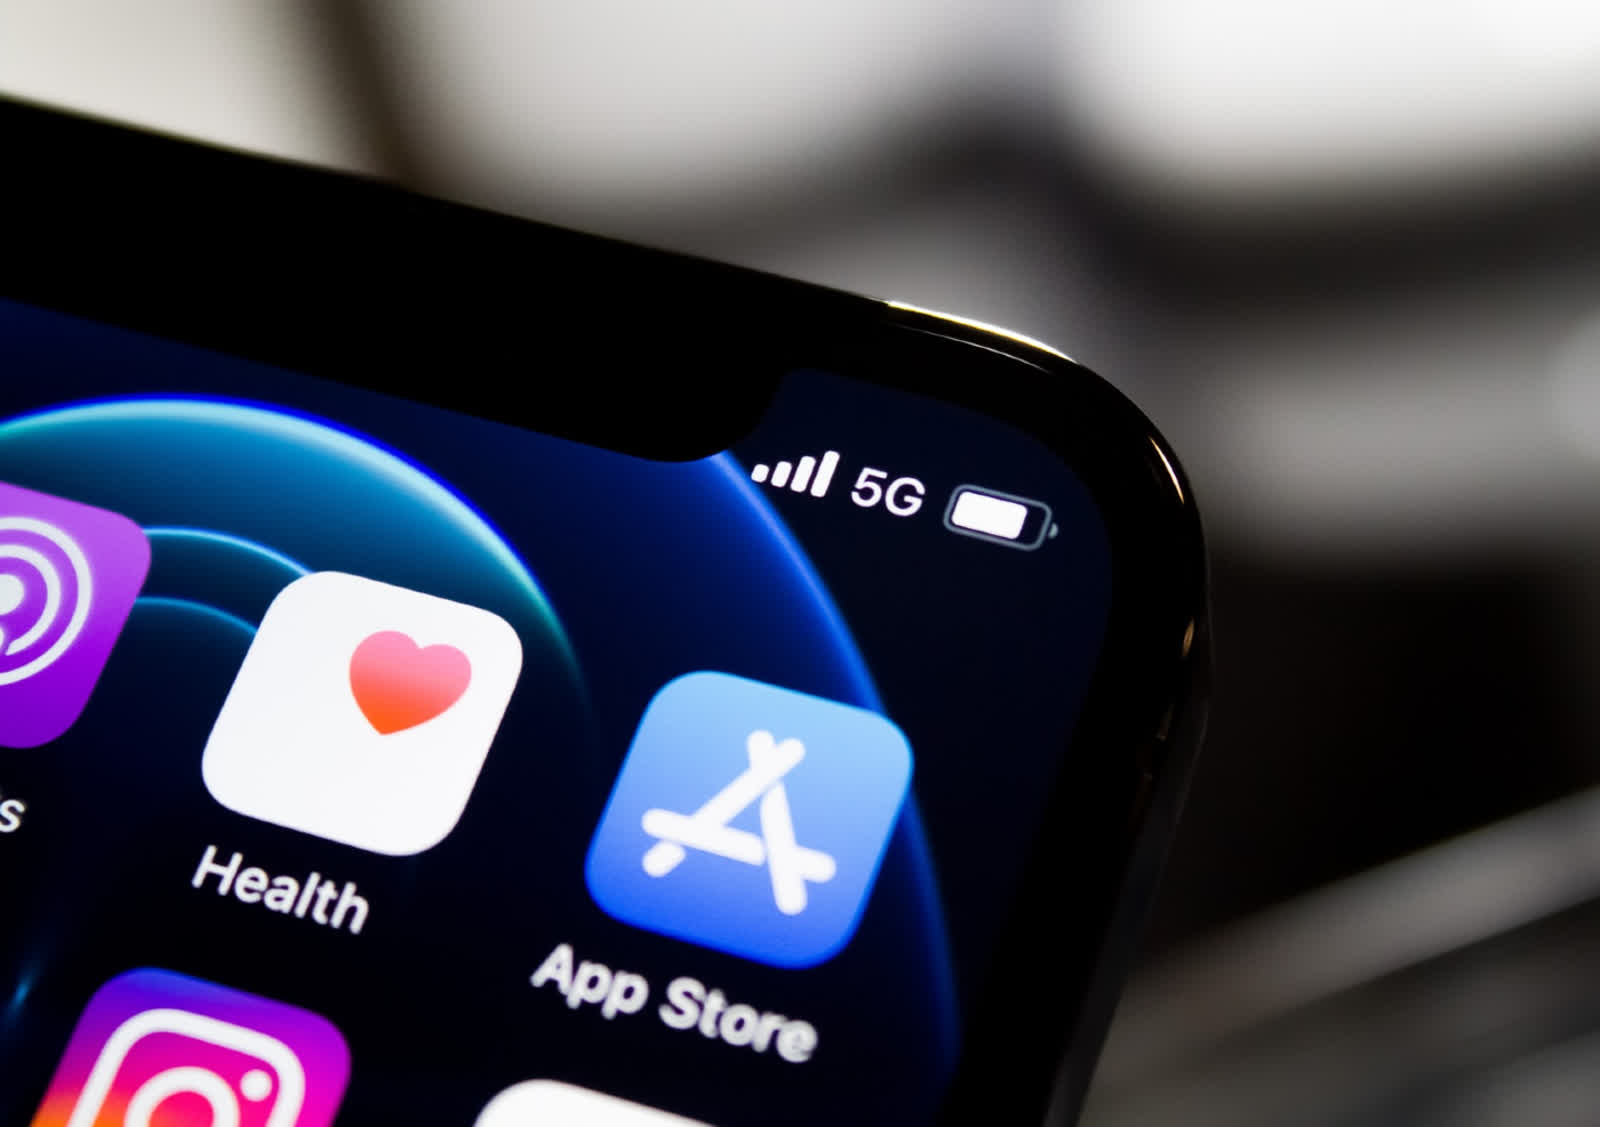 Apple defends not allowing apps outside of App Store by detailing Android malware problems